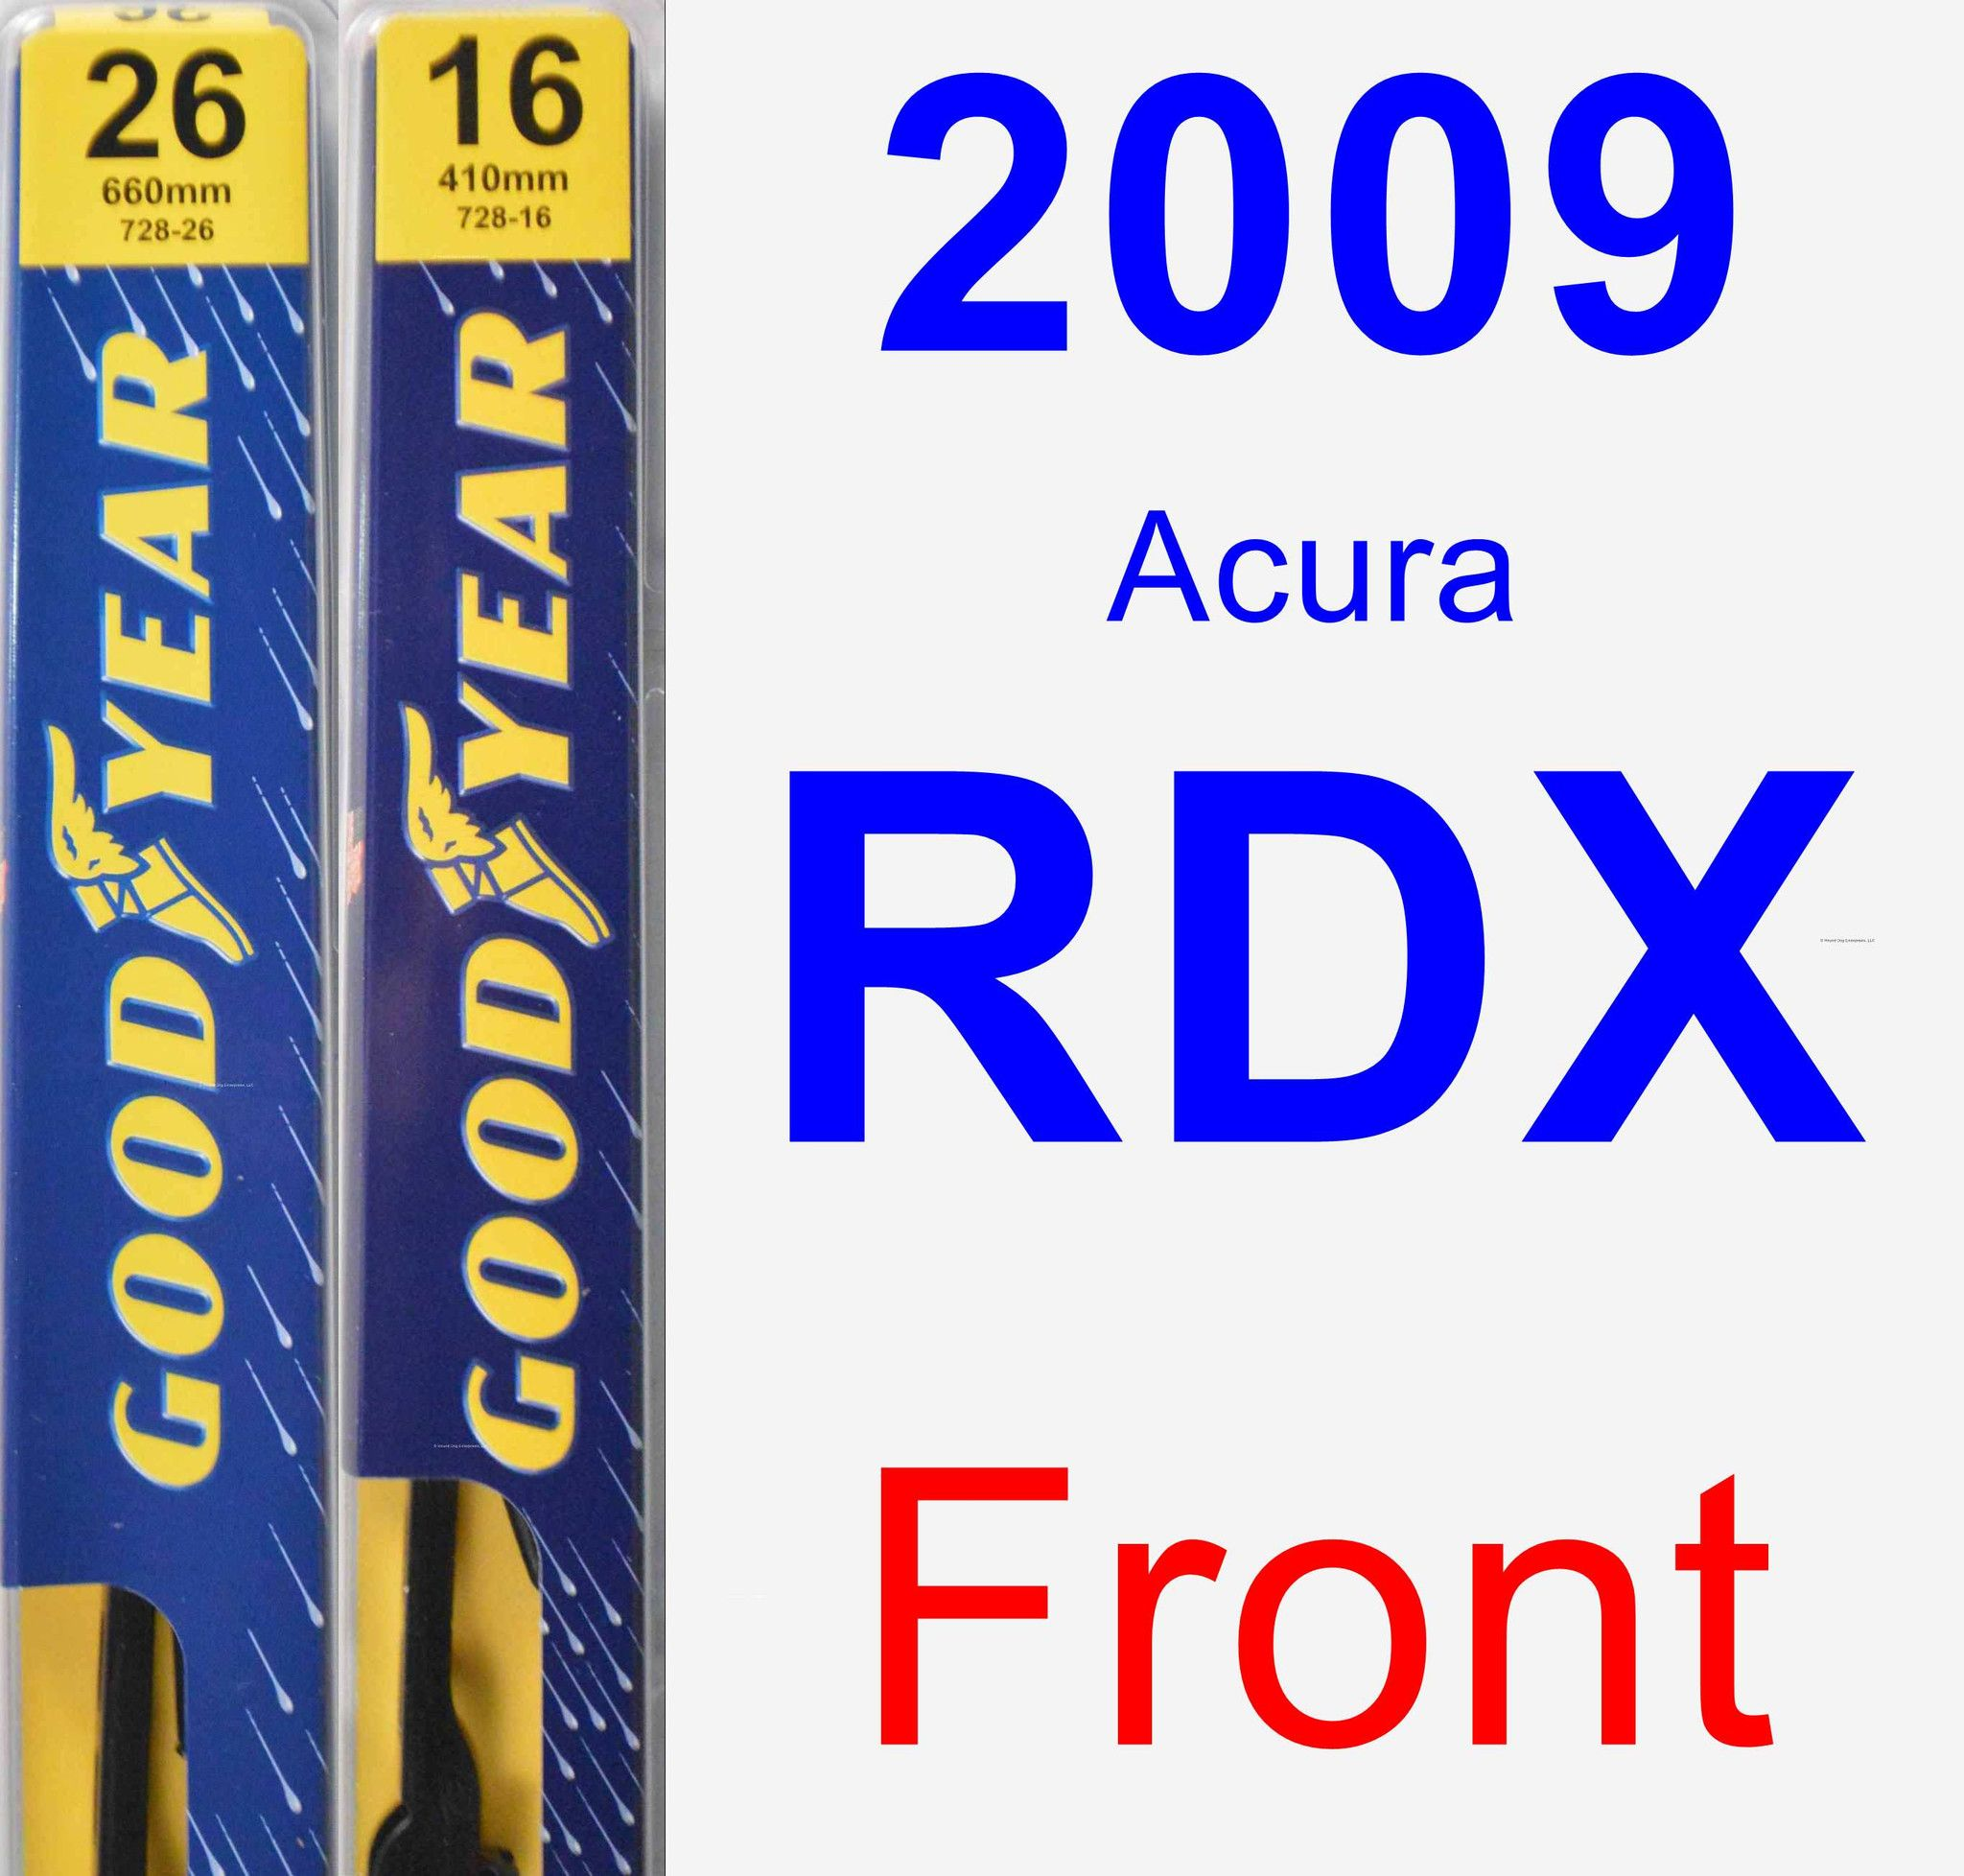 Front Wiper Blade Pack For 2009 Acura RDX